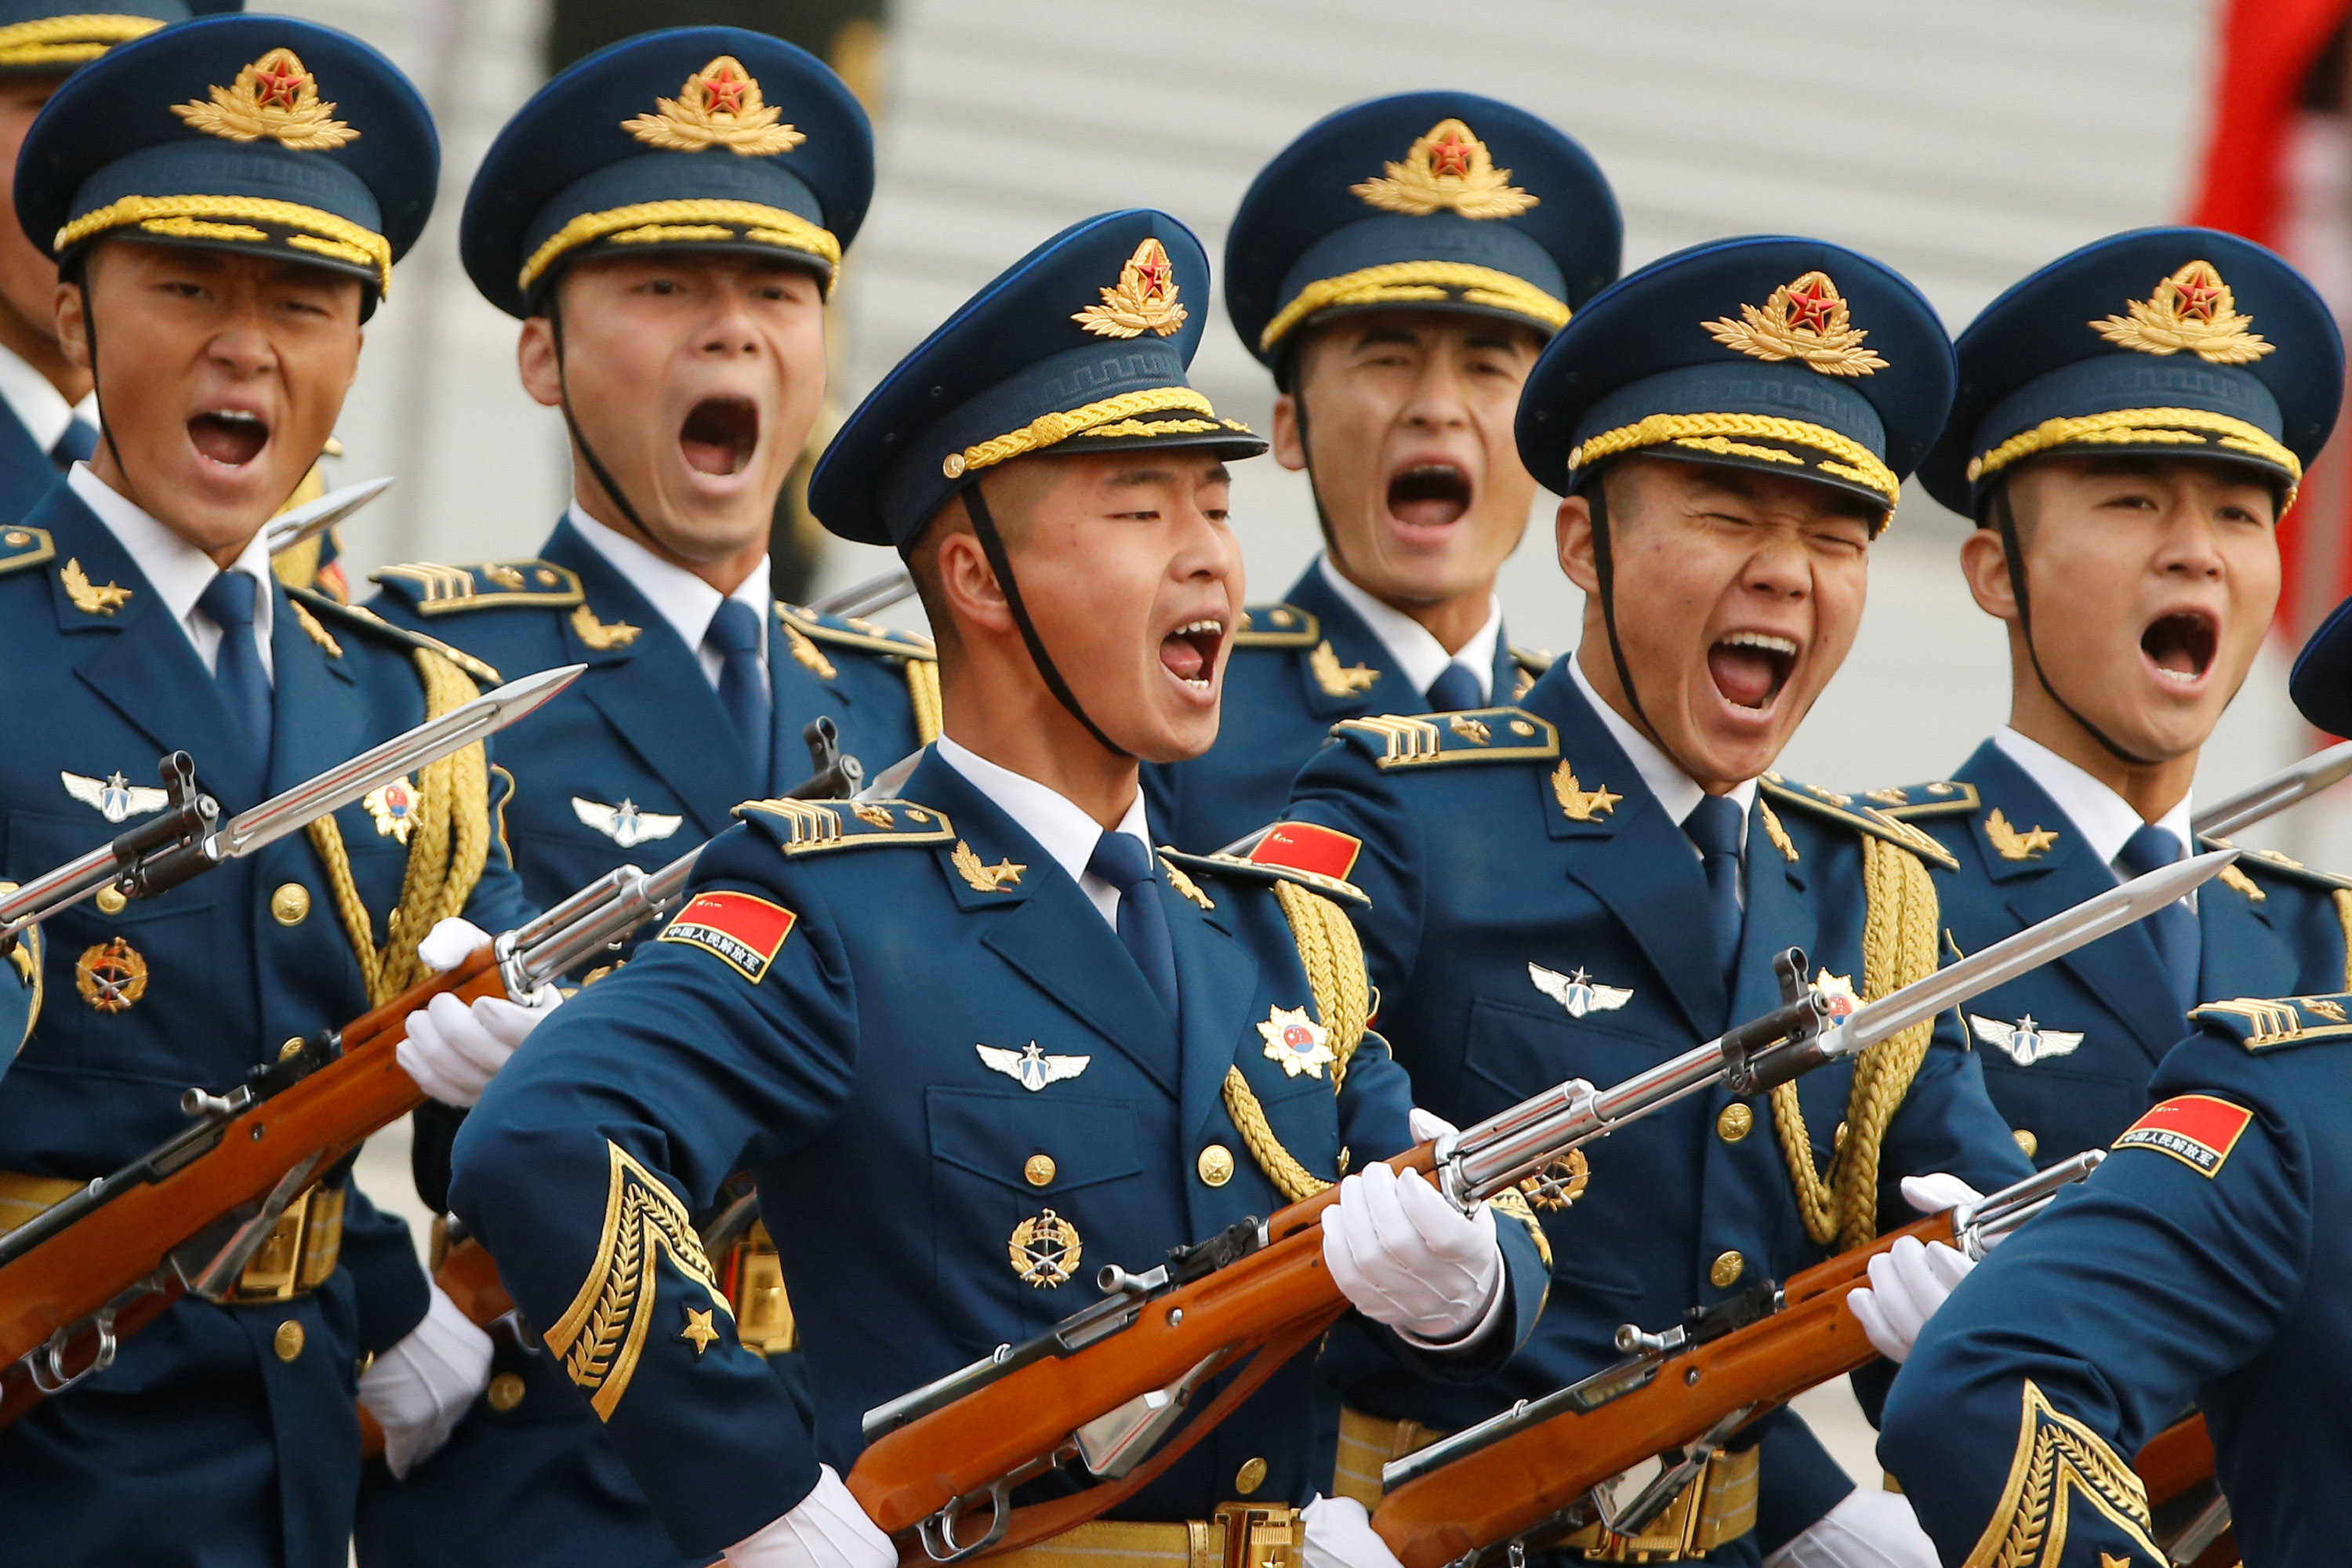 Military troops march during a welcoming ceremony for U.S. President Donald Trump in Beijing